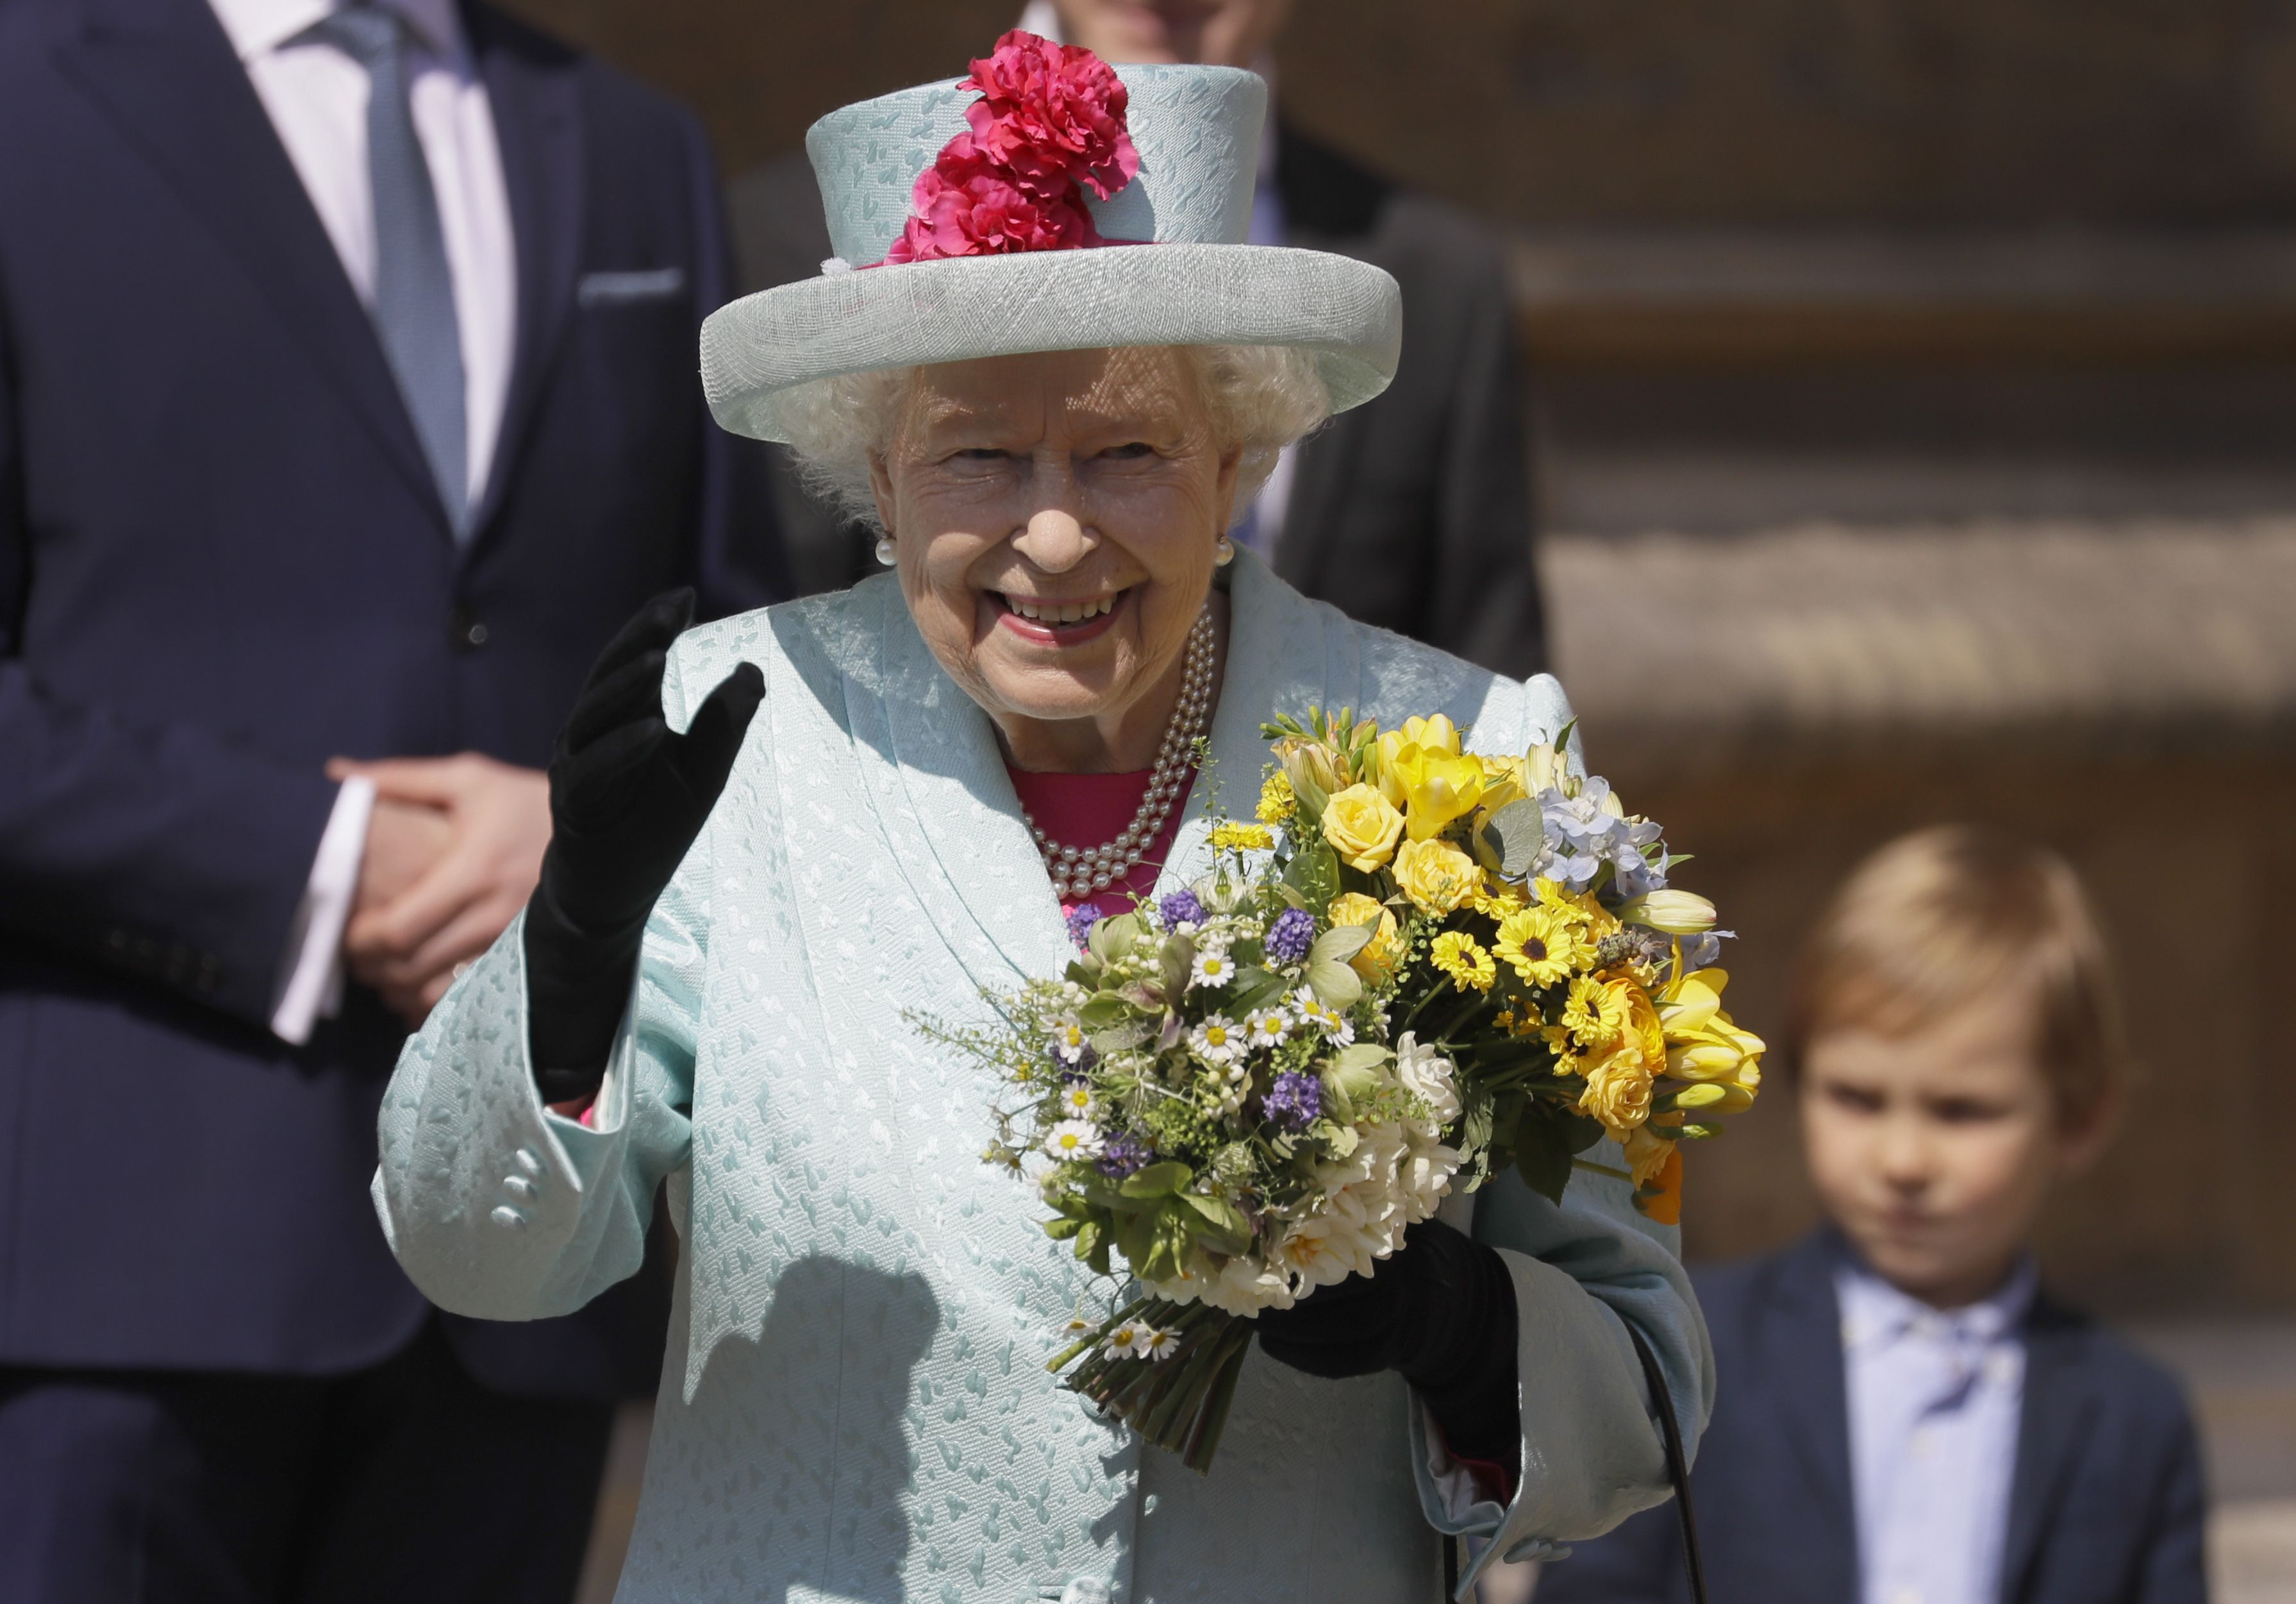 The Royal Family Celebrates Queen Elizabeth's Birthday With Sweet Messages on Instagram